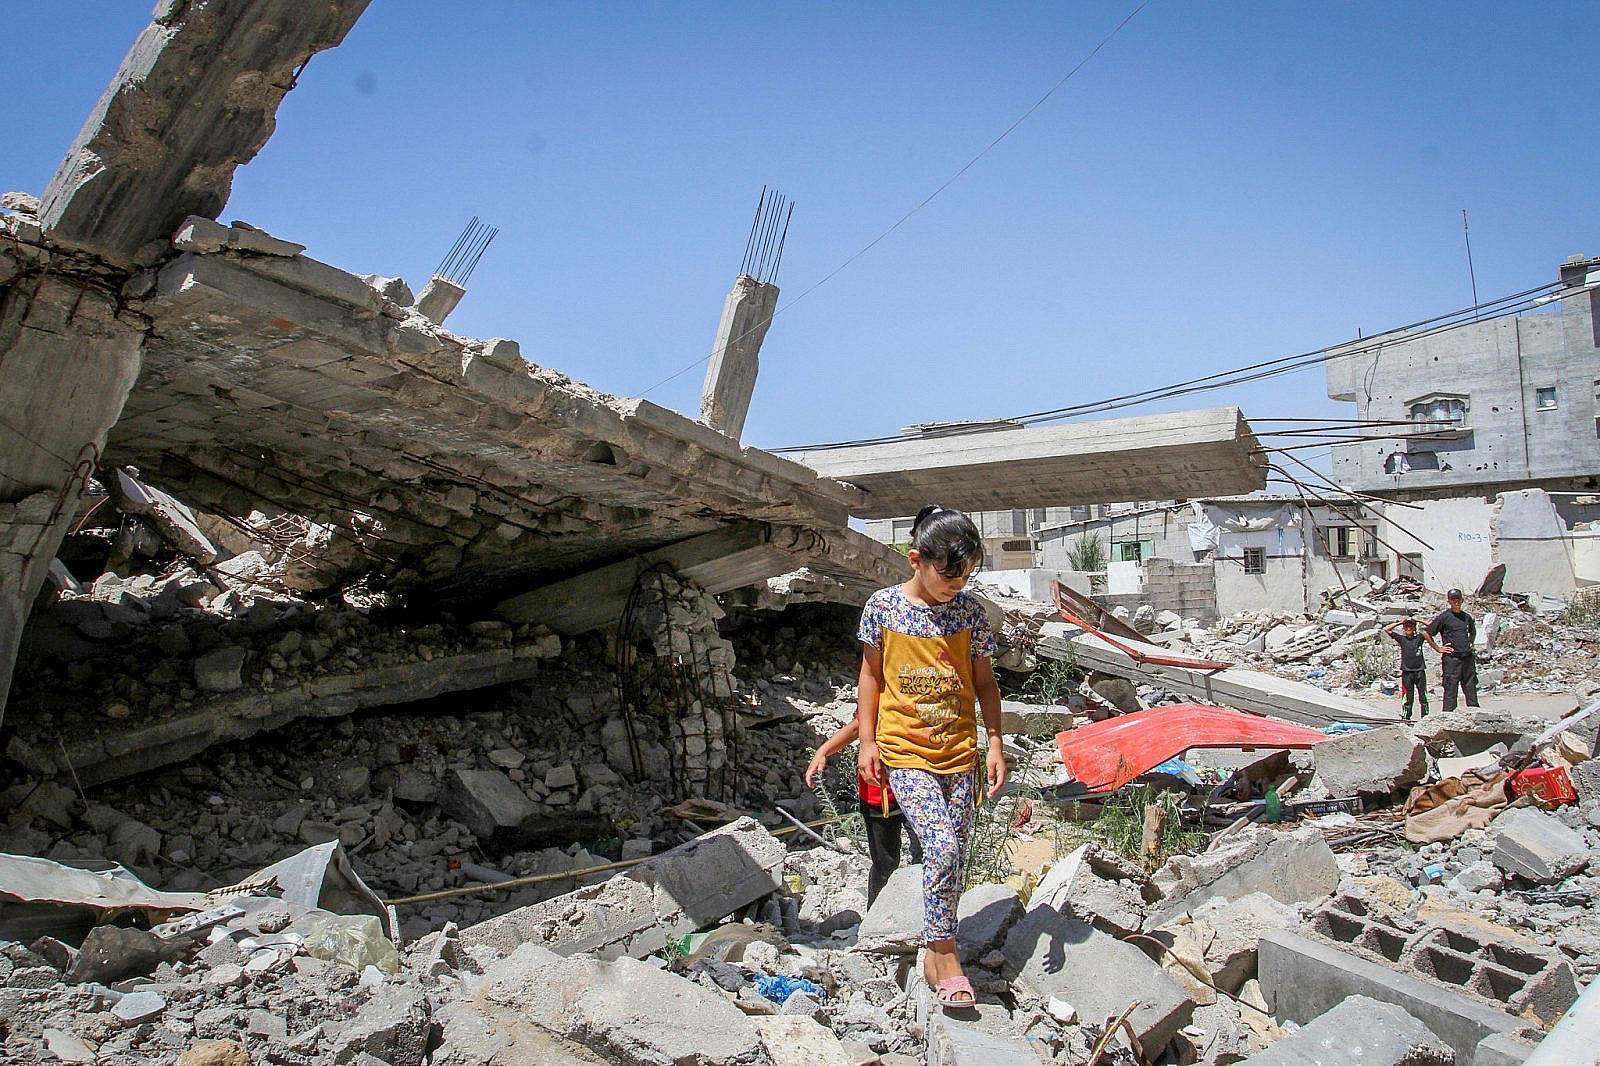 Palestinian girls play in the rubble of a house, which was destroyed during the 50-day war between Israel and Hamas in the summer of 2014, in Rafah in the southern Gaza Strip on July 30, 2015. (Abed Rahim Khatib/Flash 90)